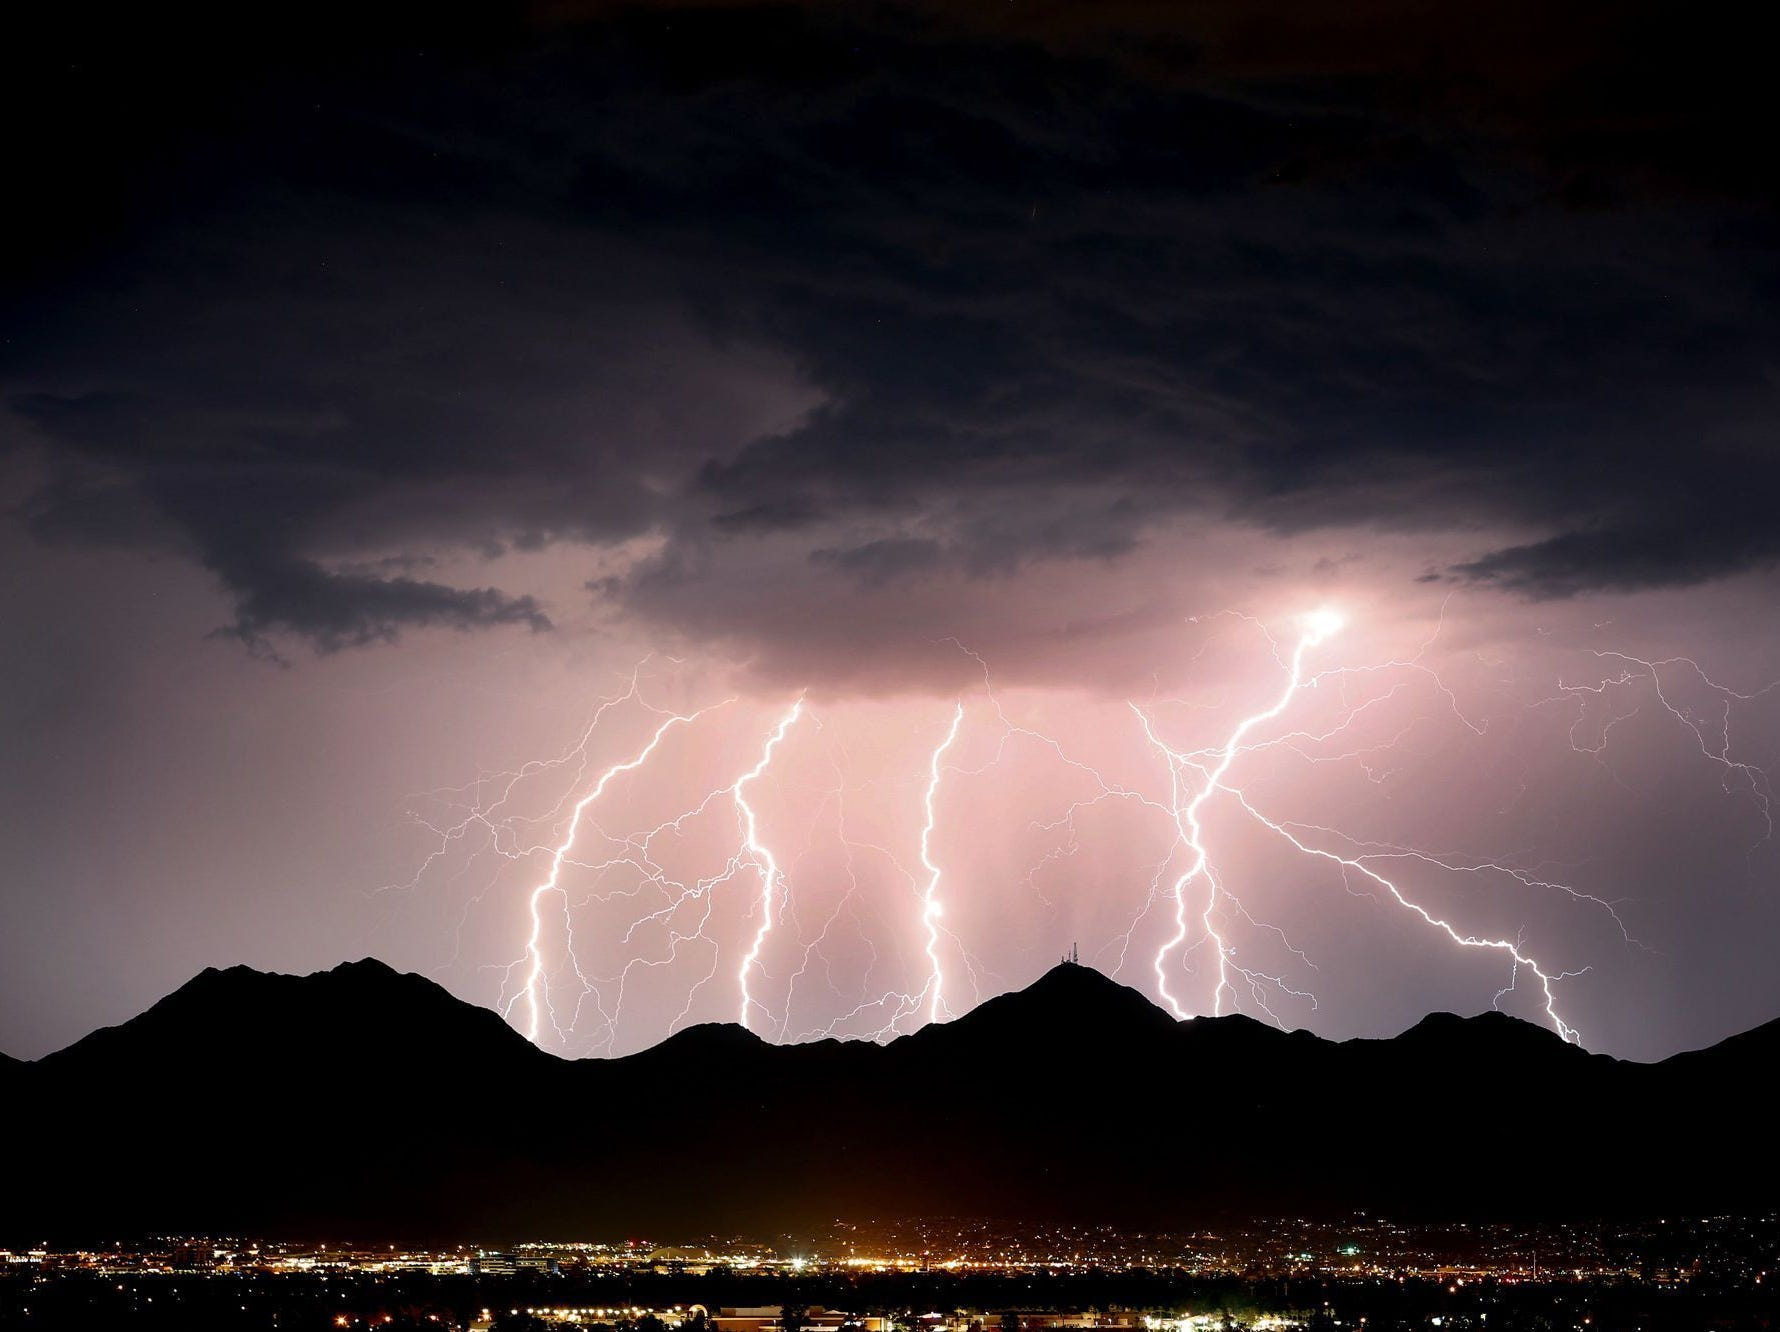 Lightning streaks across the desert sky over the McDowell Mountains near Scottsdale, Ariz. during a monsoon storm on July 15, 2017. [Via MerlinFTP Drop]